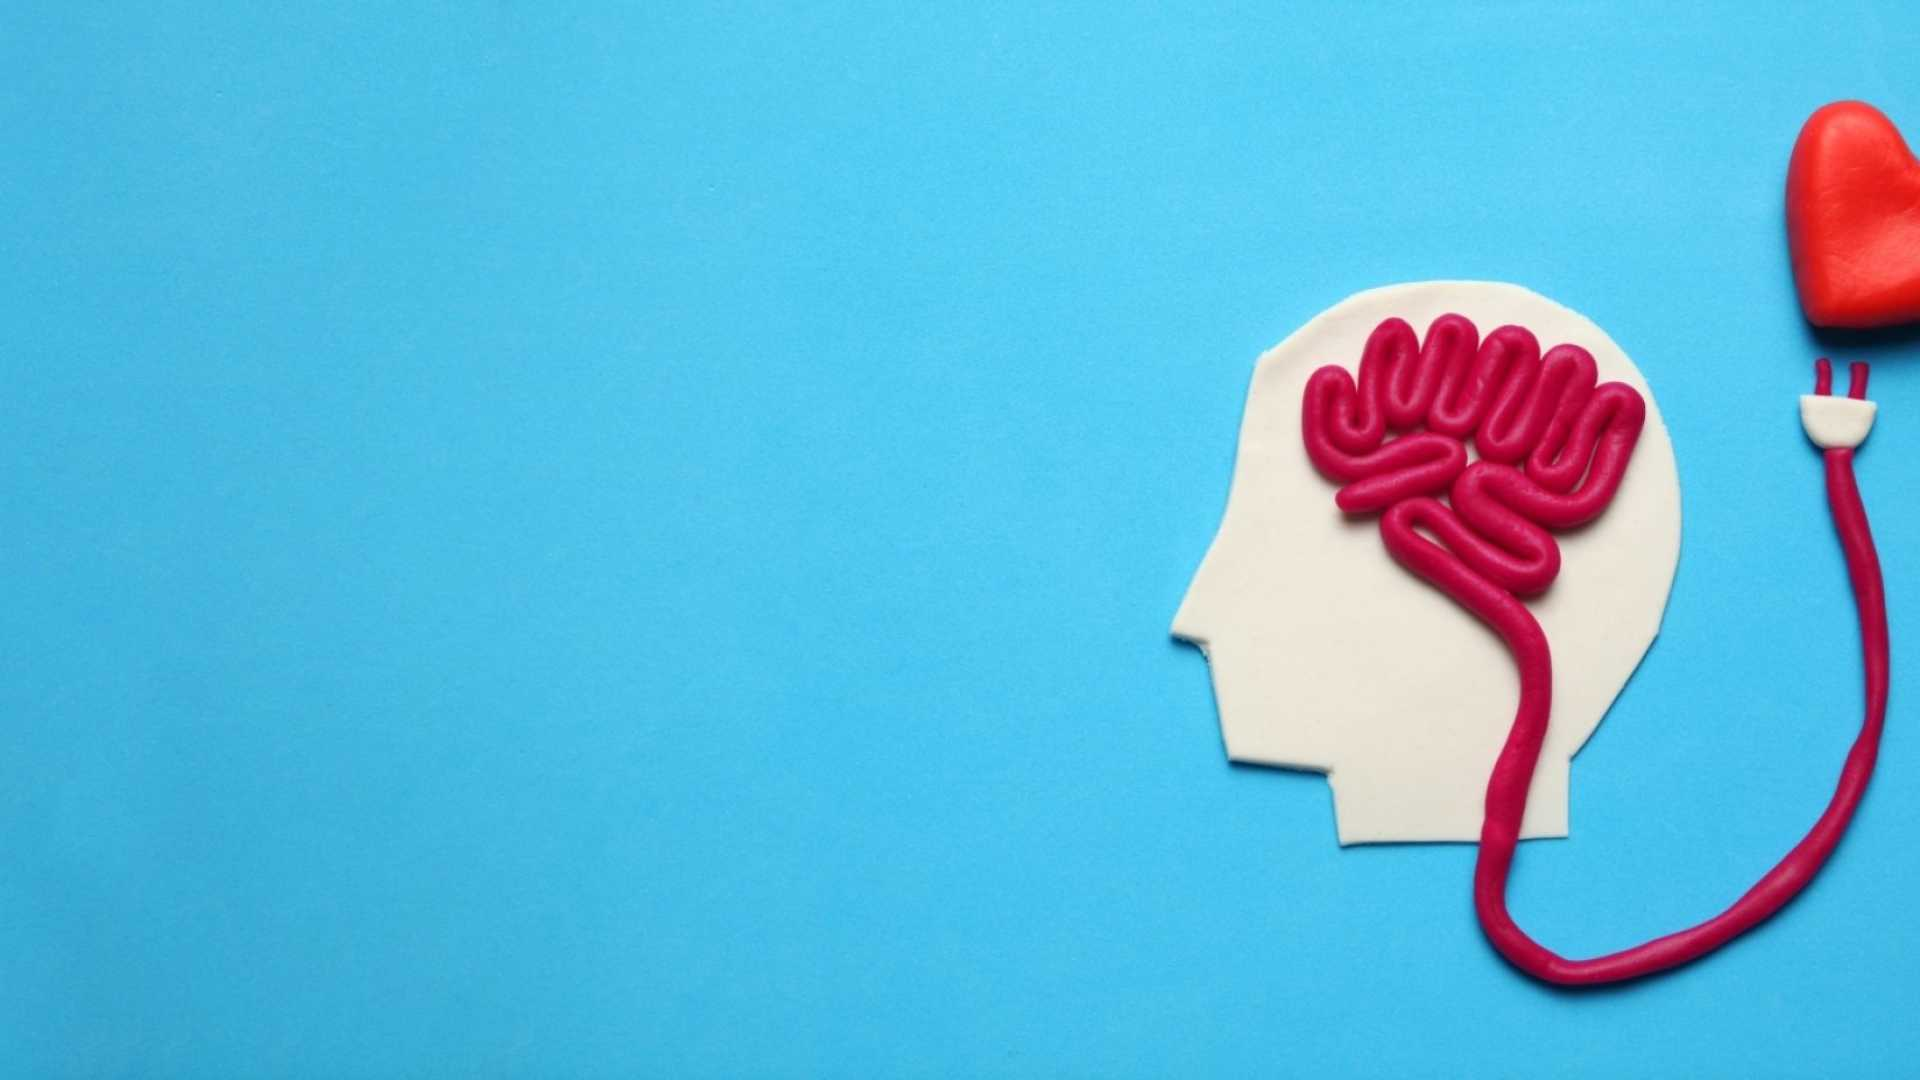 New Research Answers the Question: Should You Follow Your Head or Your Heart to Experience More Happiness at Work?